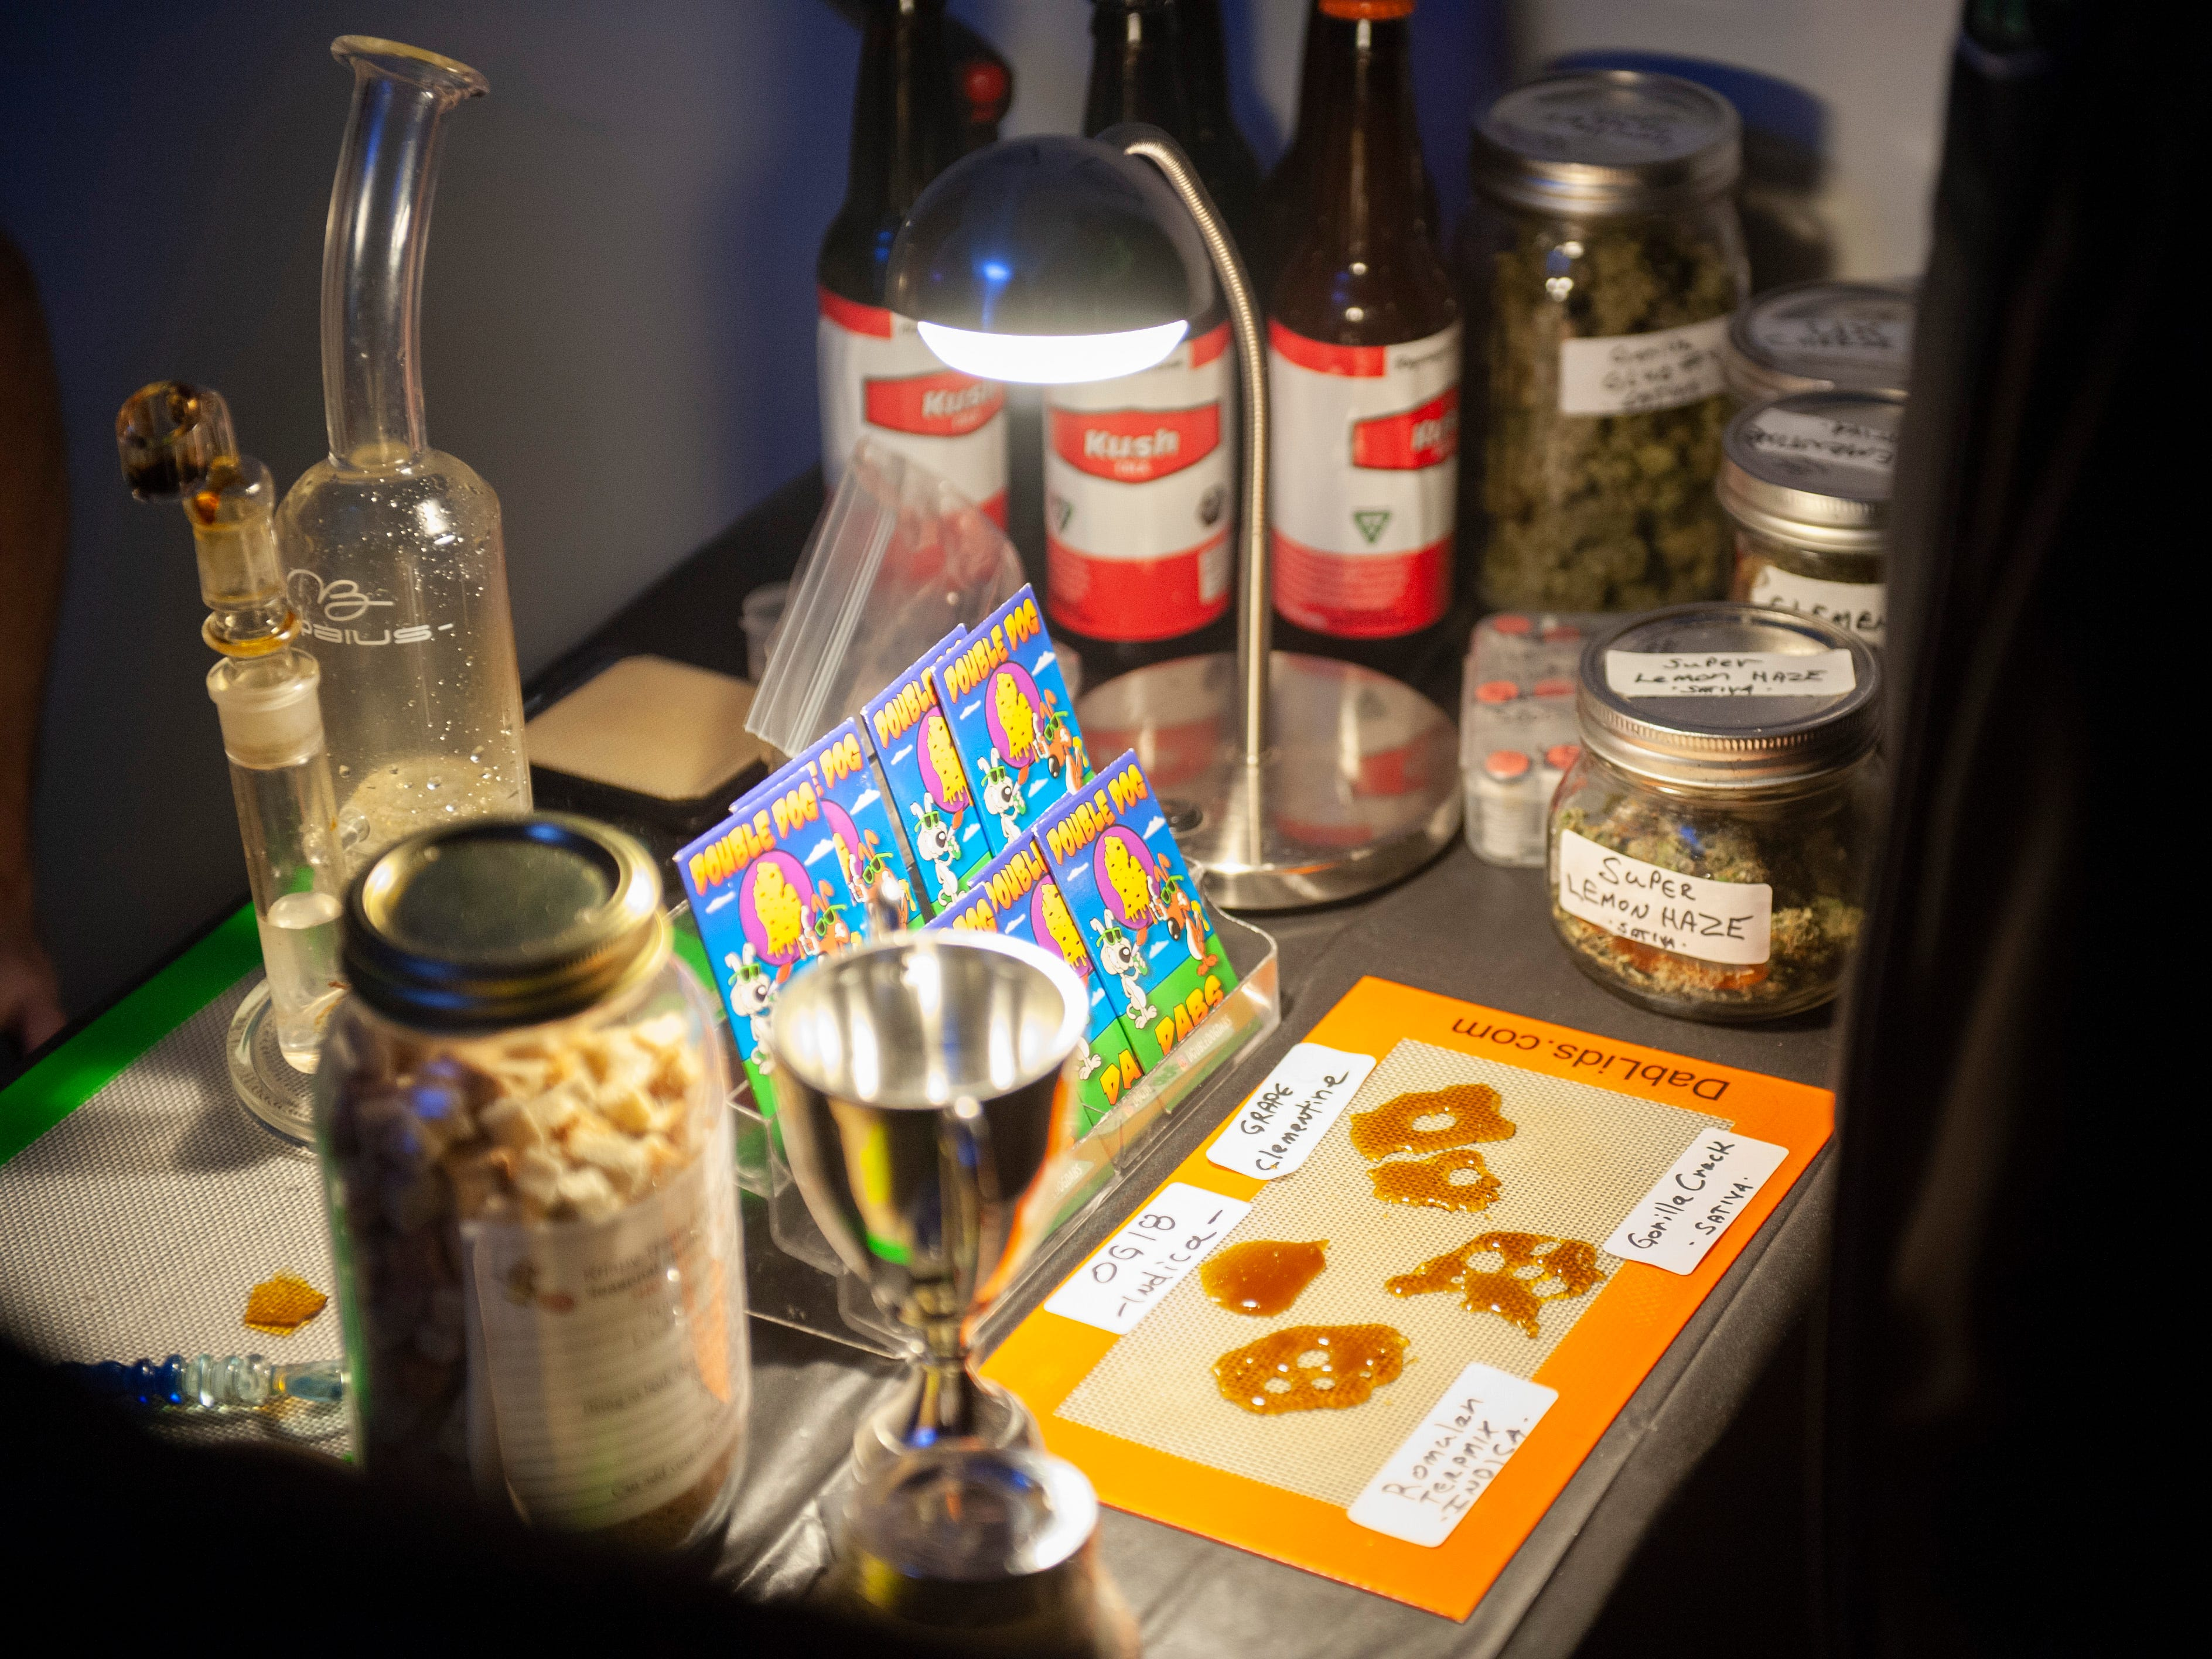 """Double Dog Dabs display of cannabis products including """"dabs,"""" which are condensed THC resins usually smoked in a glass bong and various strains of marijuana buds and THC-infused Kush Cola at """"The Art of Cannabis"""" event."""